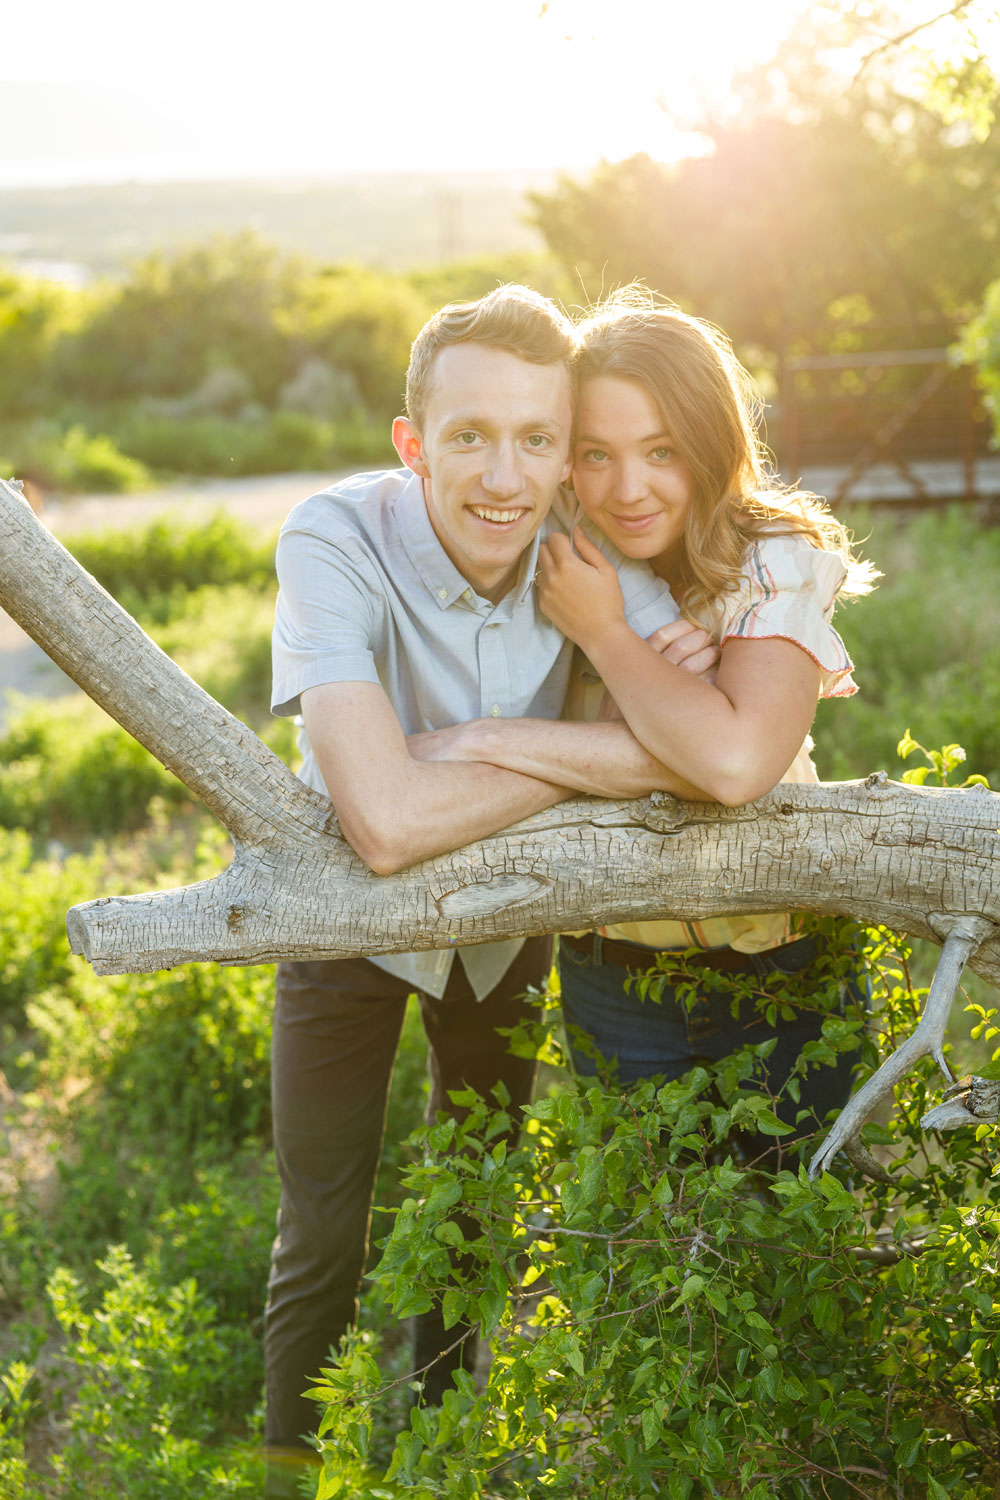 Engagement shoot in Provo